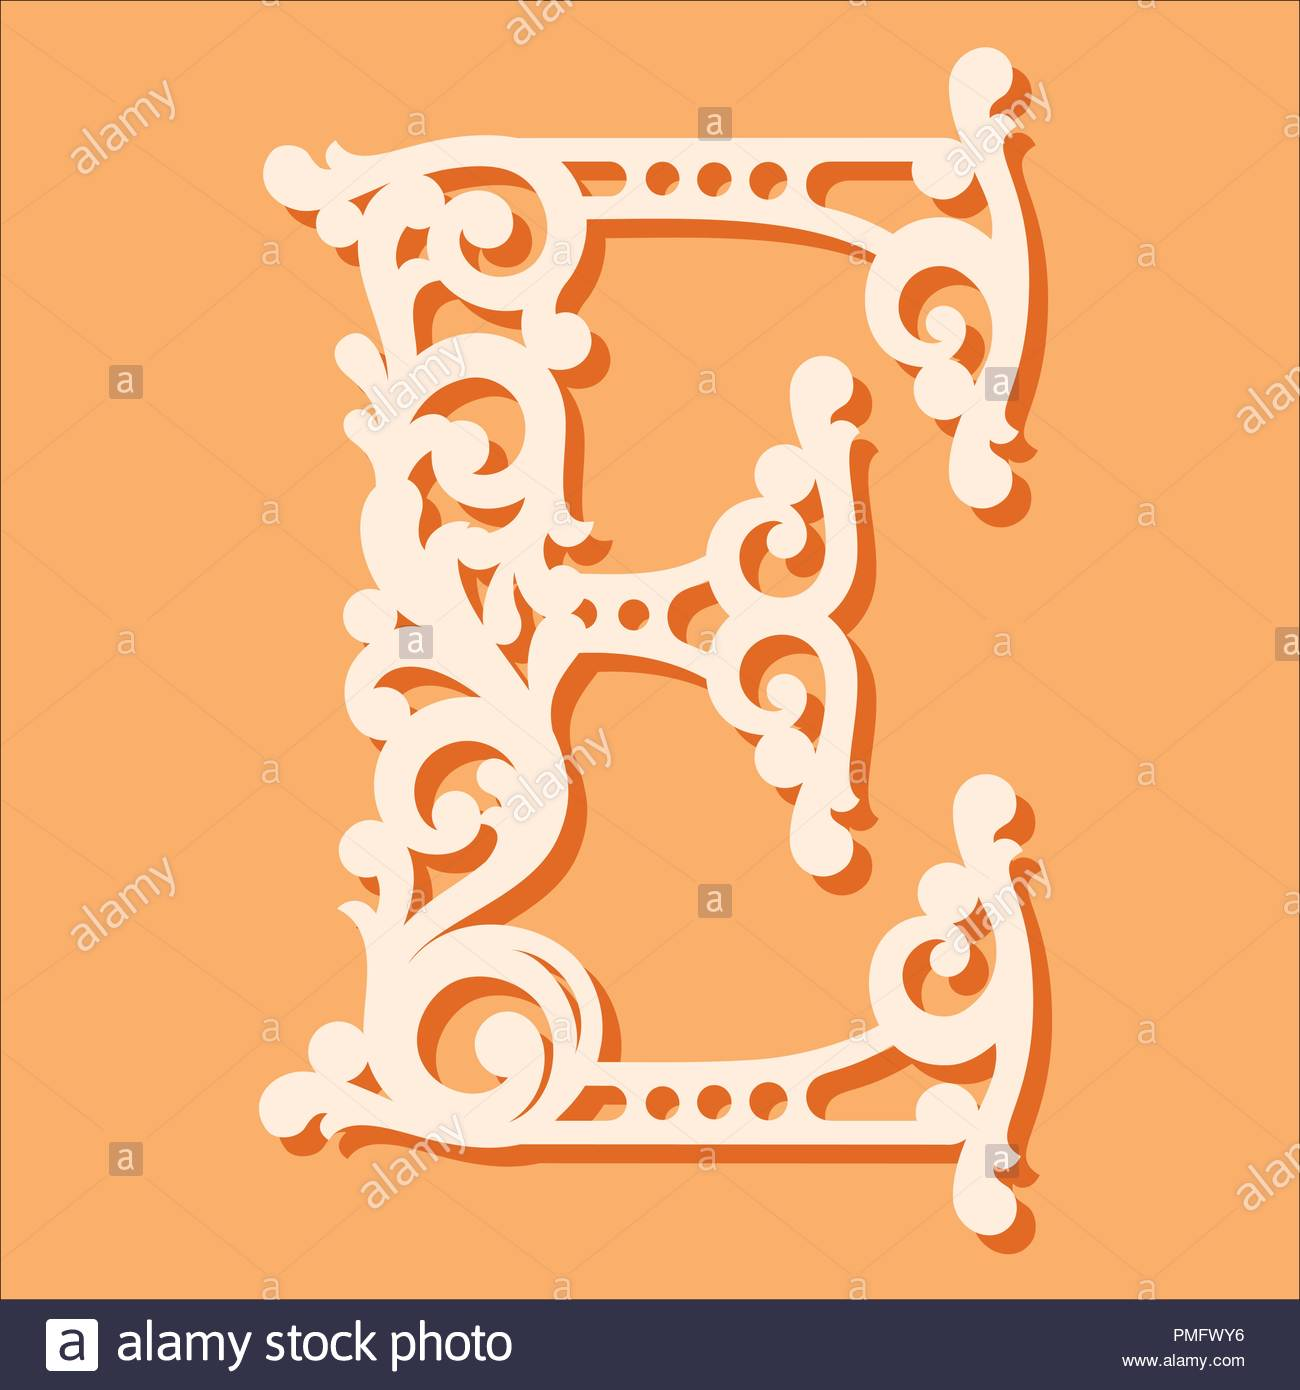 Laser Cut Template Initial Monogram Letters Fancy Floral Alphabet Letter May Be Used For Paper Cutting Wooden Font